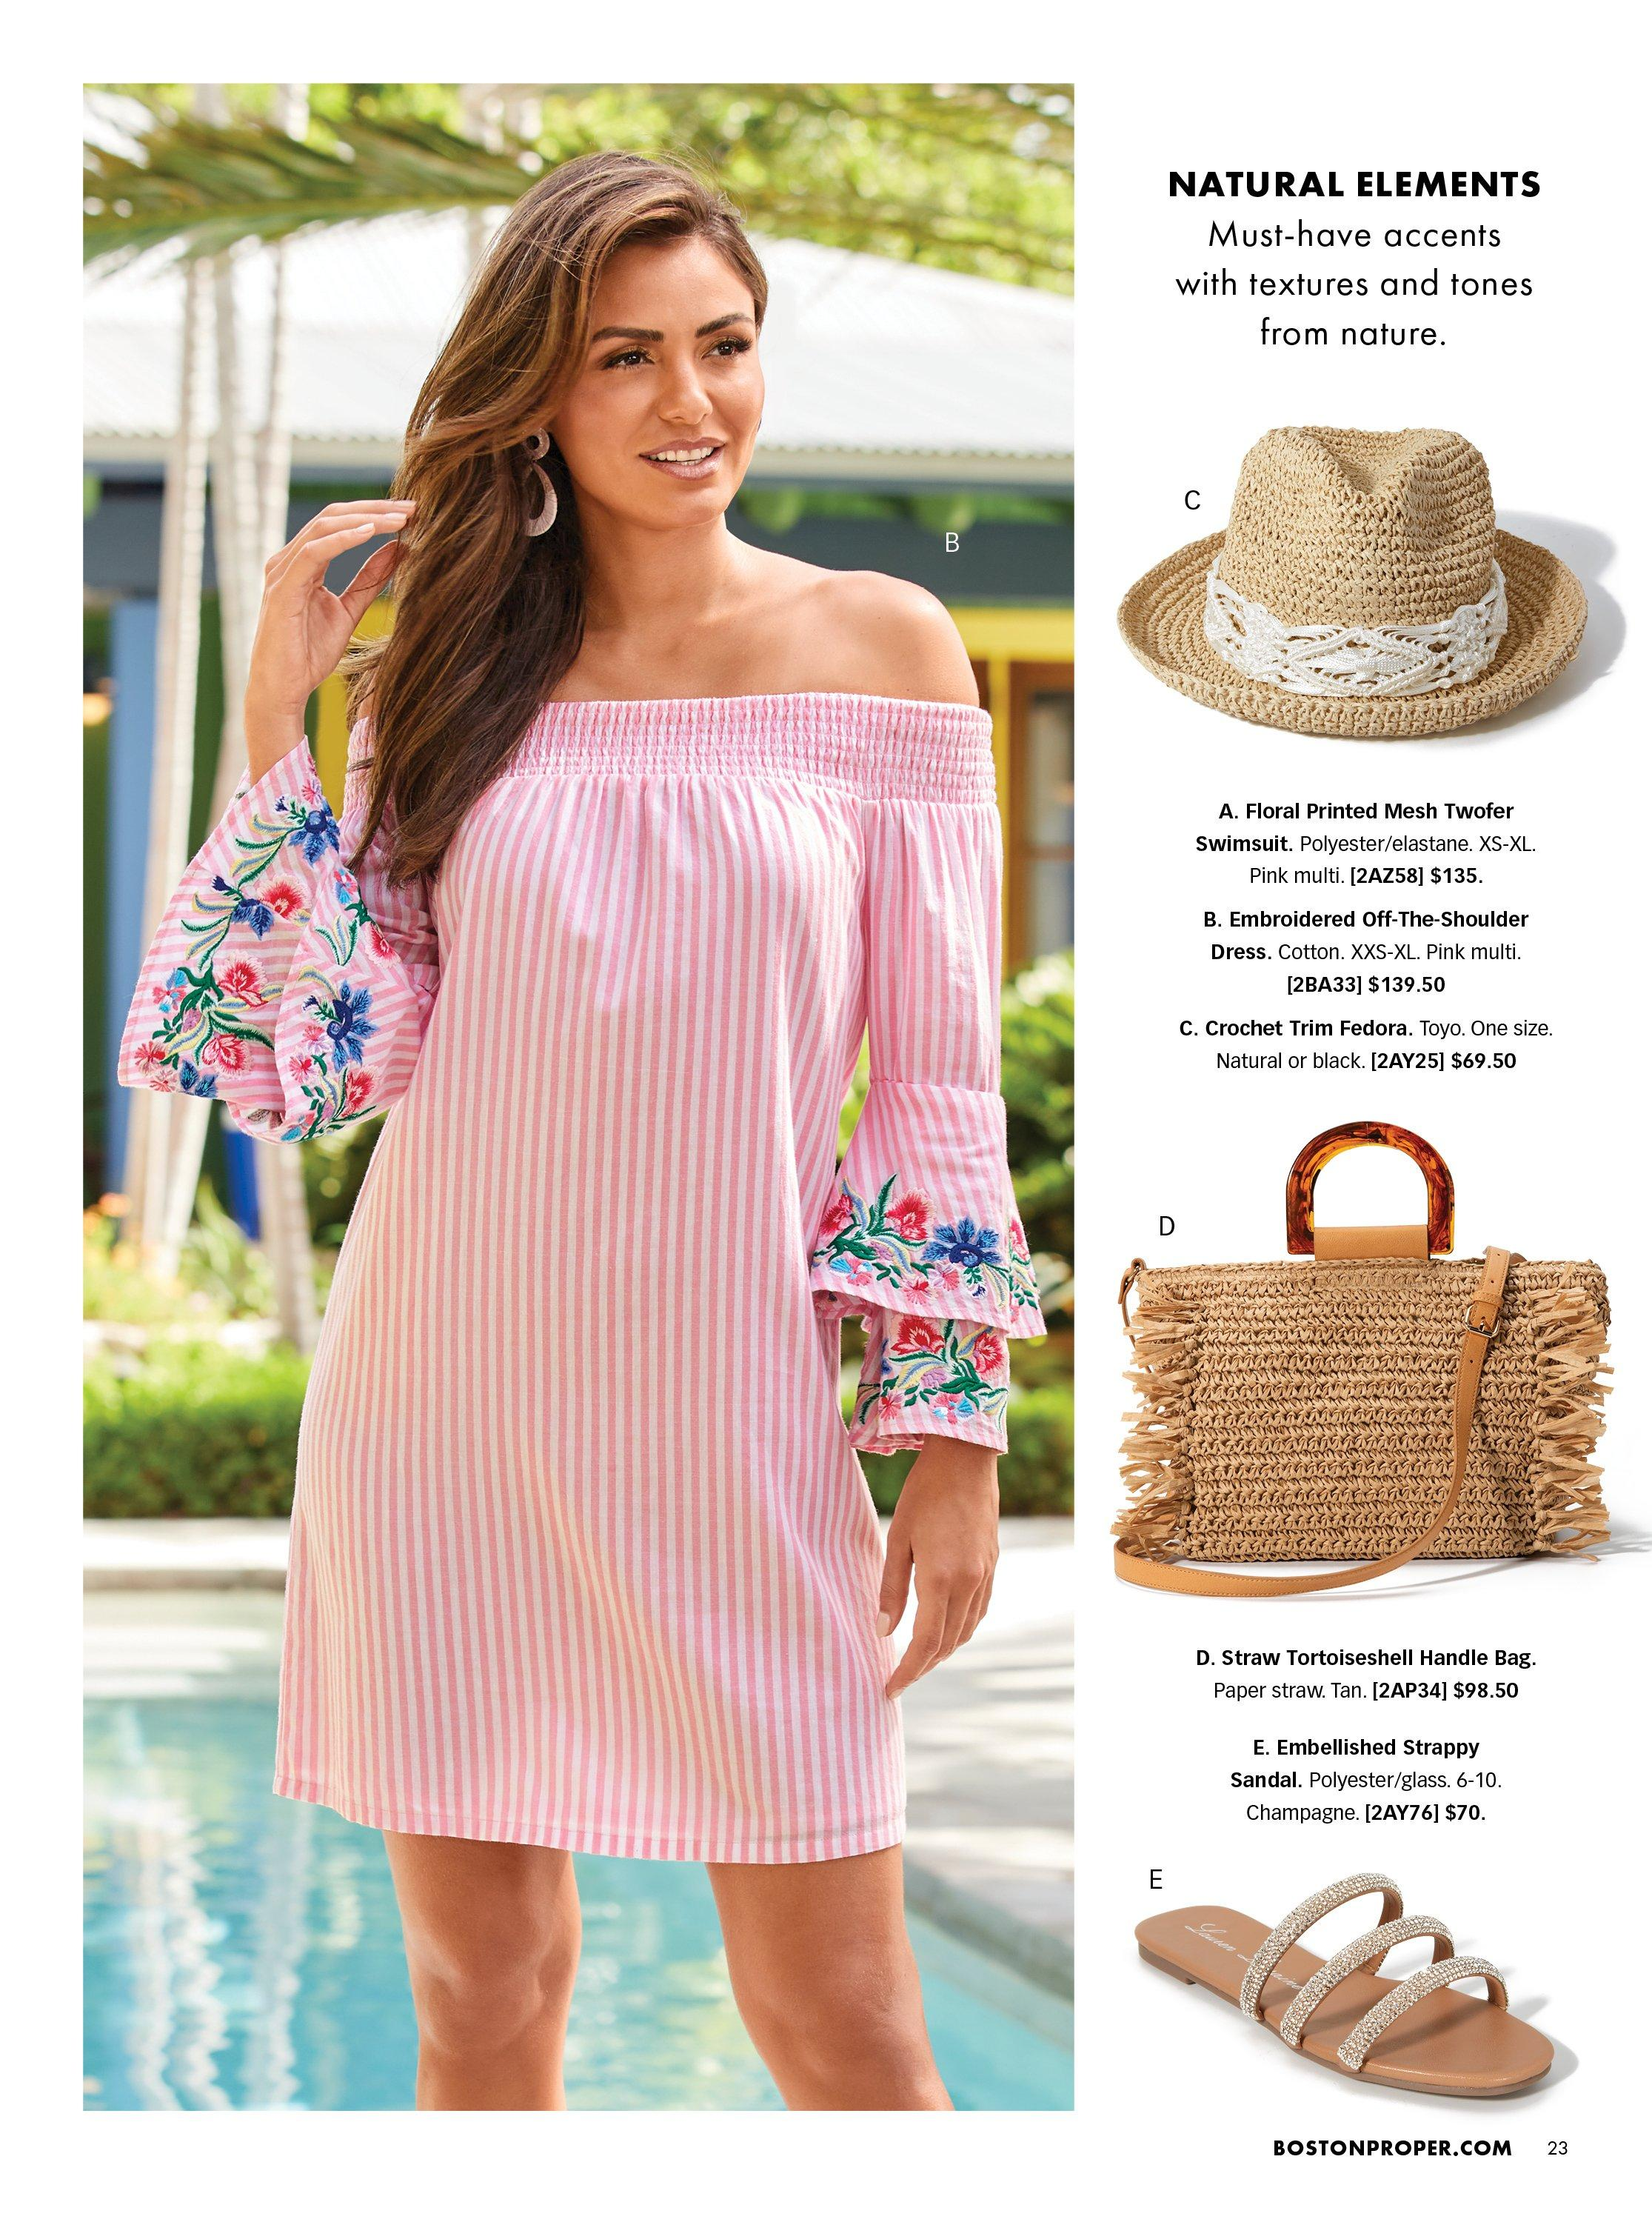 model wearing a pink off-the-shoulder floral embroidered dress. right panel shows a straw and lace hat, straw handbag, and embellished strappy sandals.